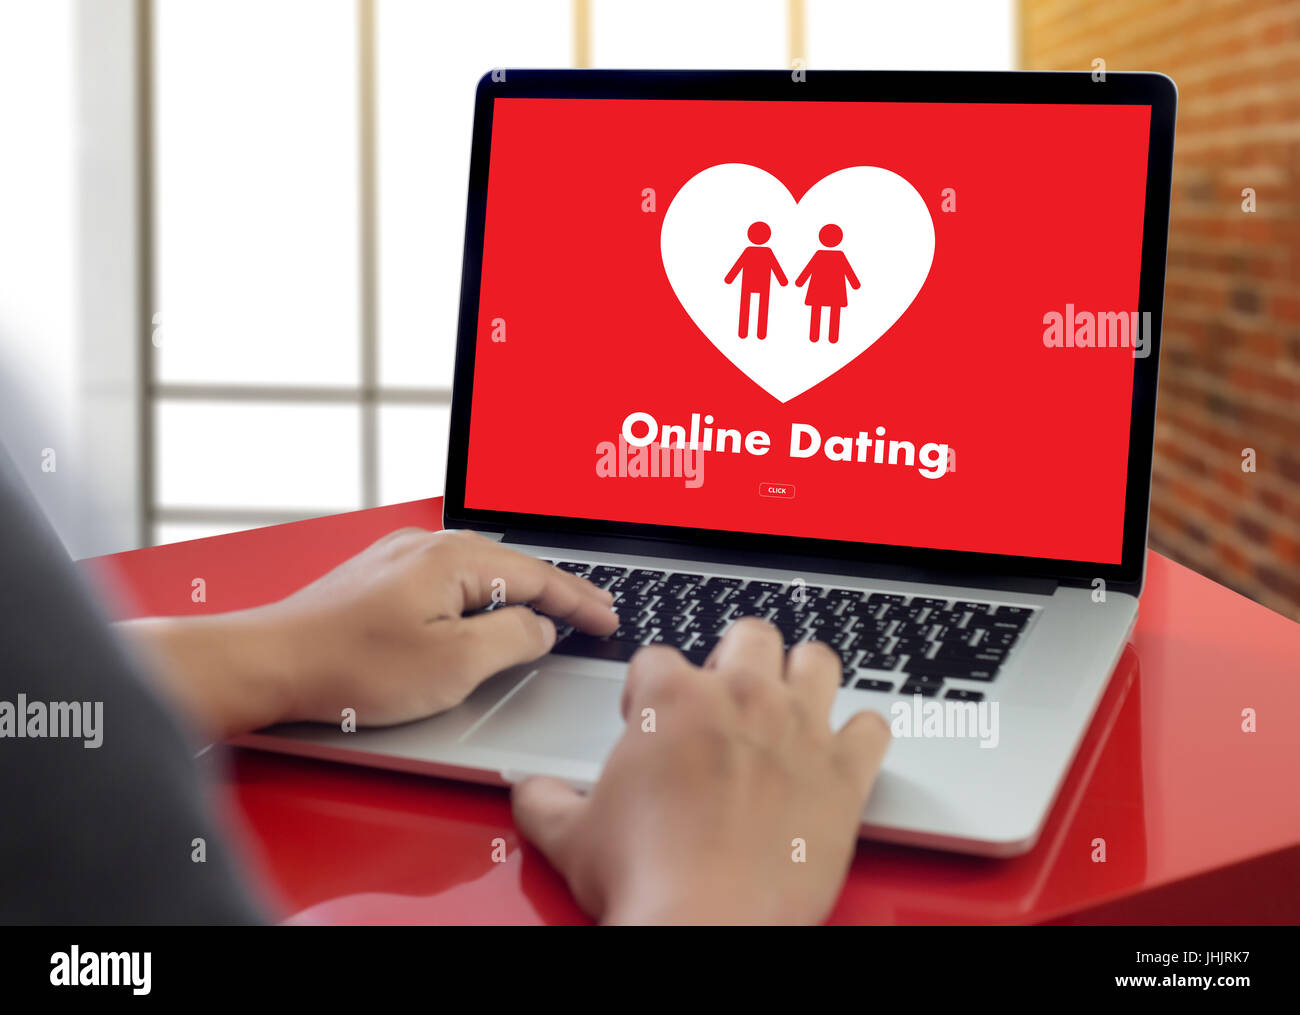 Online Dating NYC